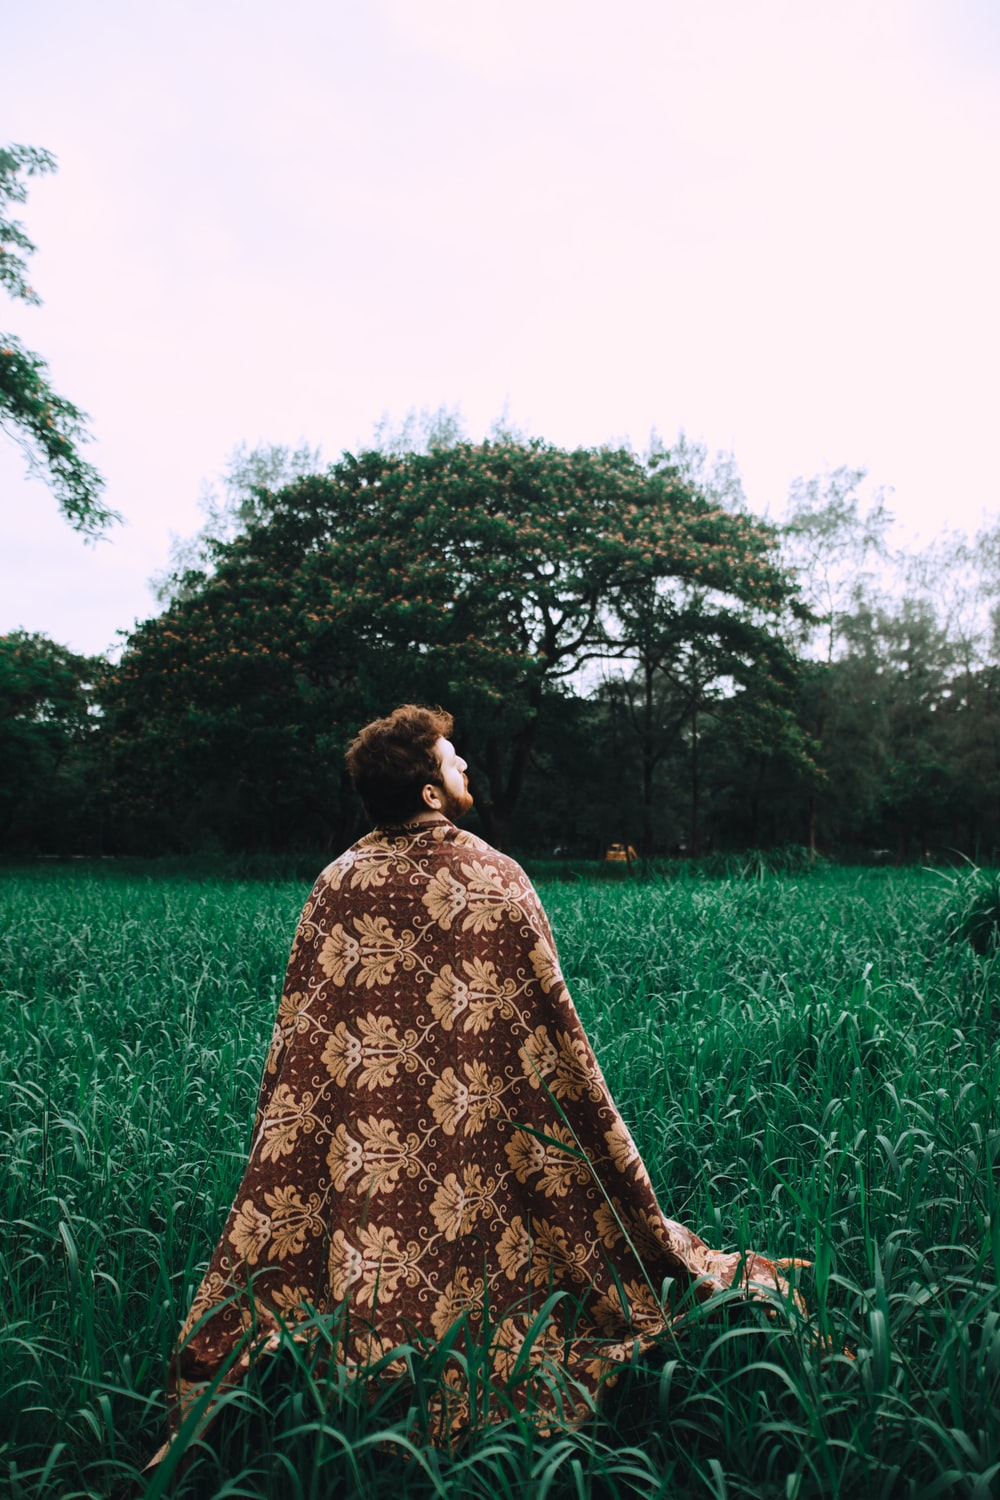 man wearing brown floral robe surrounded by grass